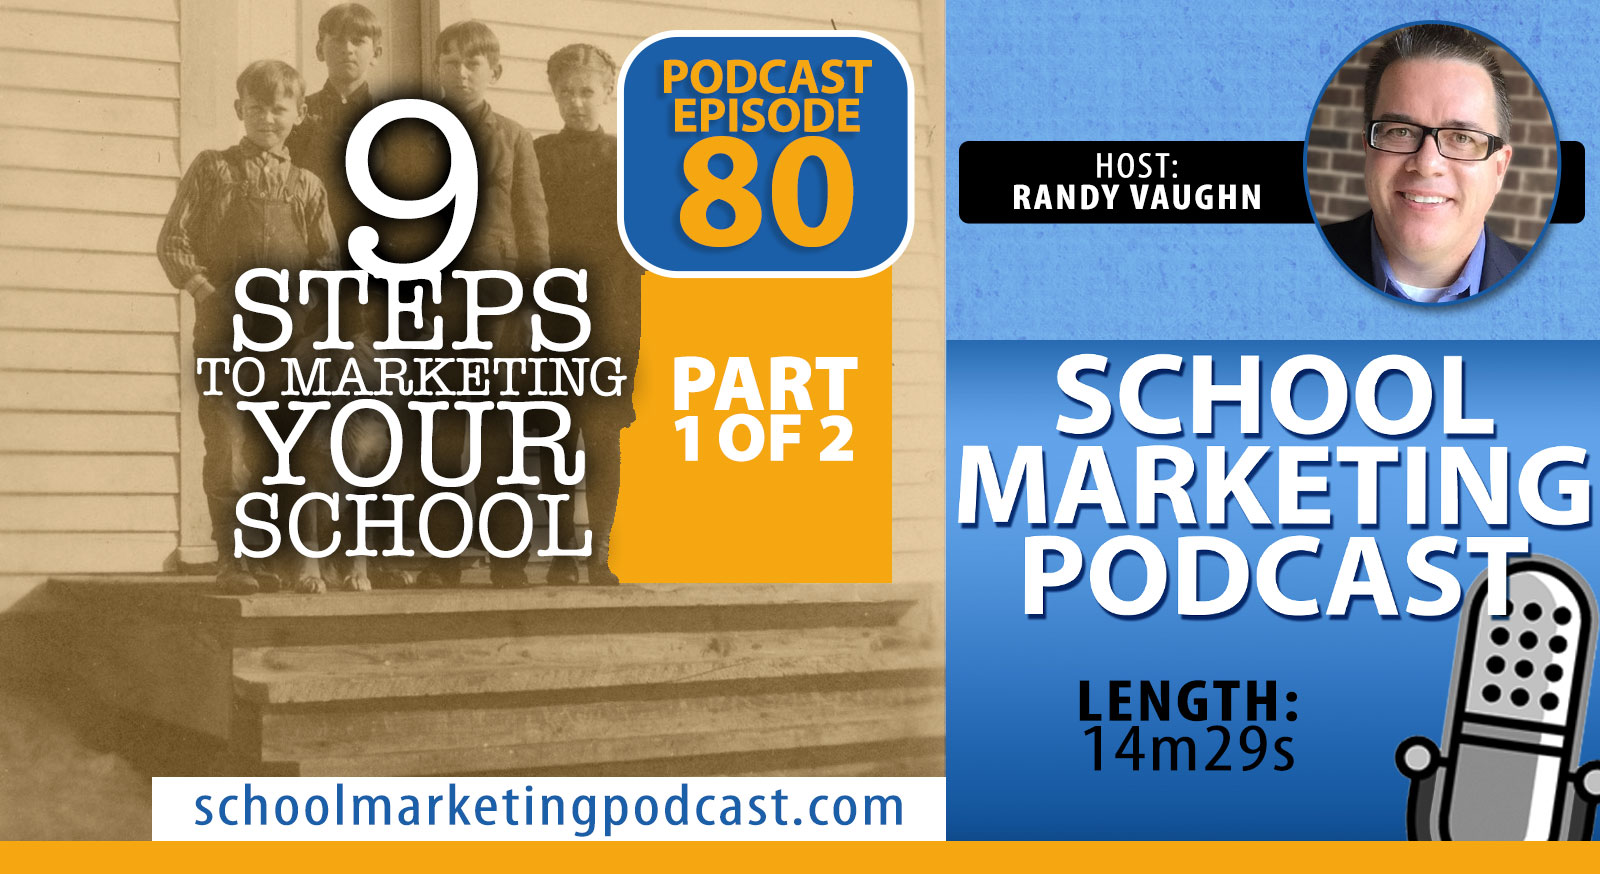 9 Steps to Marketing Your School, Part 1 of 2 (School Marketing Podcast #80)